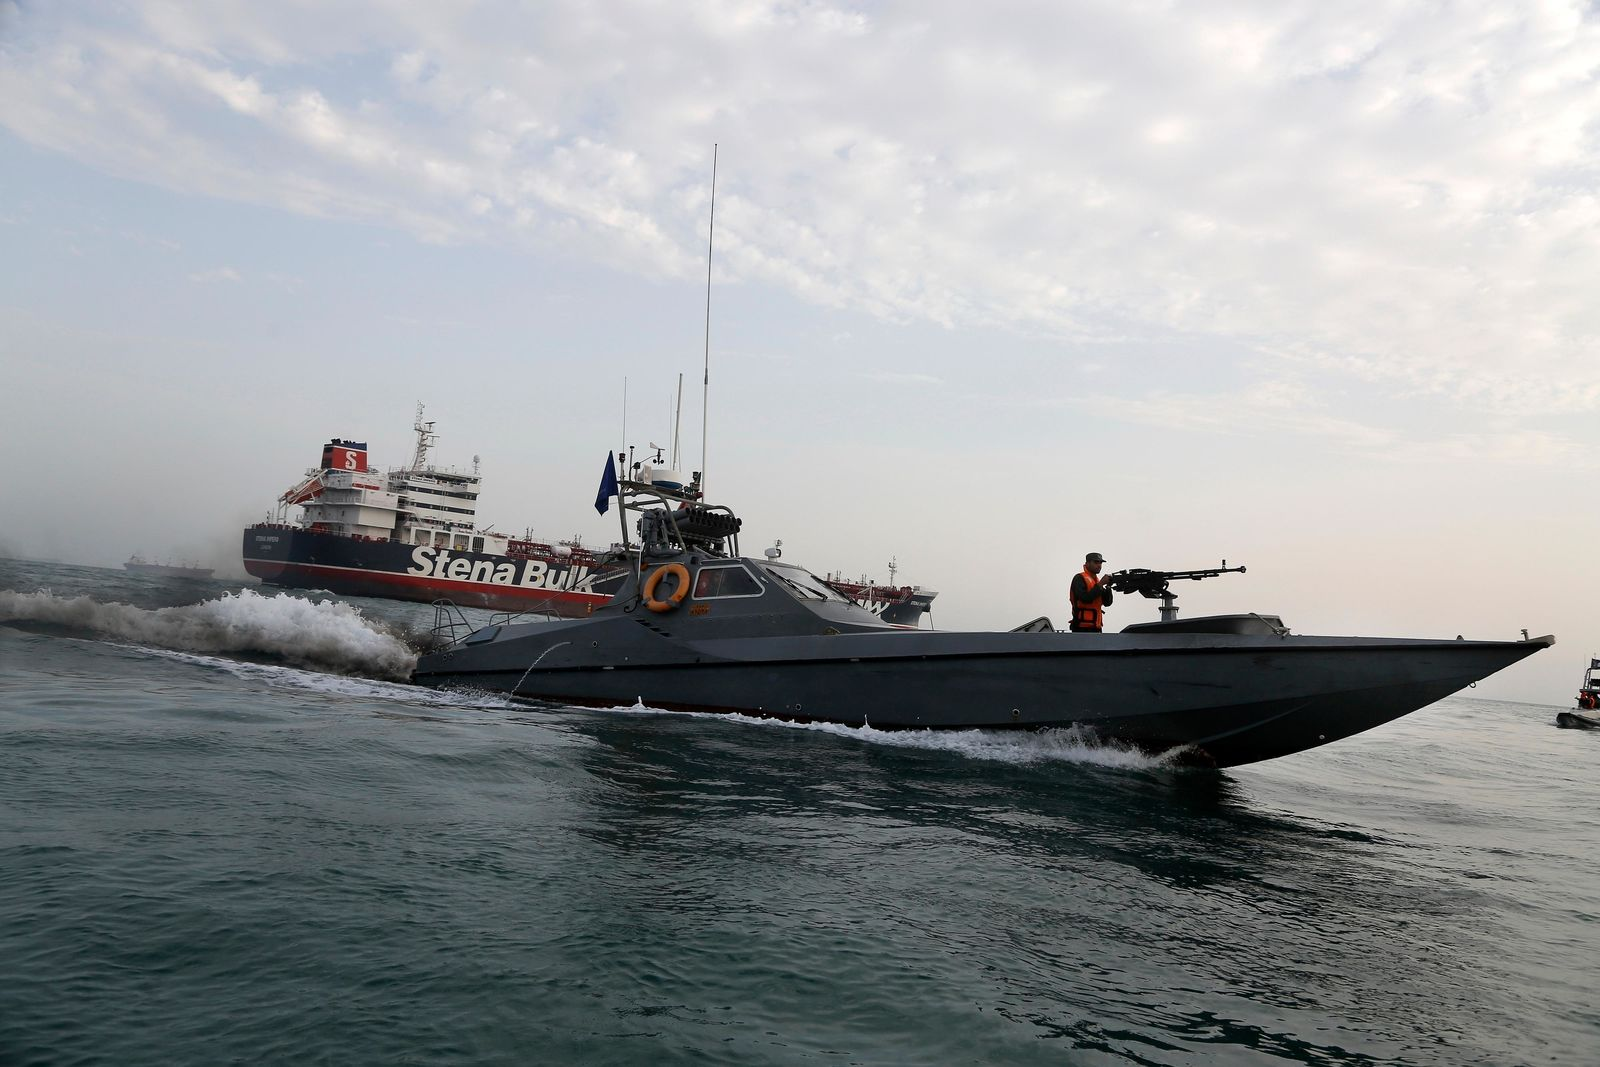 FILE- In this July 21, 2019 file photo, a speedboat of the Iran's Revolutionary Guard moves around a British-flagged oil tanker Stena Impero, which was seized on Friday by the Guard, in the Iranian port of Bandar Abbas. (Hasan Shirvani/Mizan News Agency via AP, File)